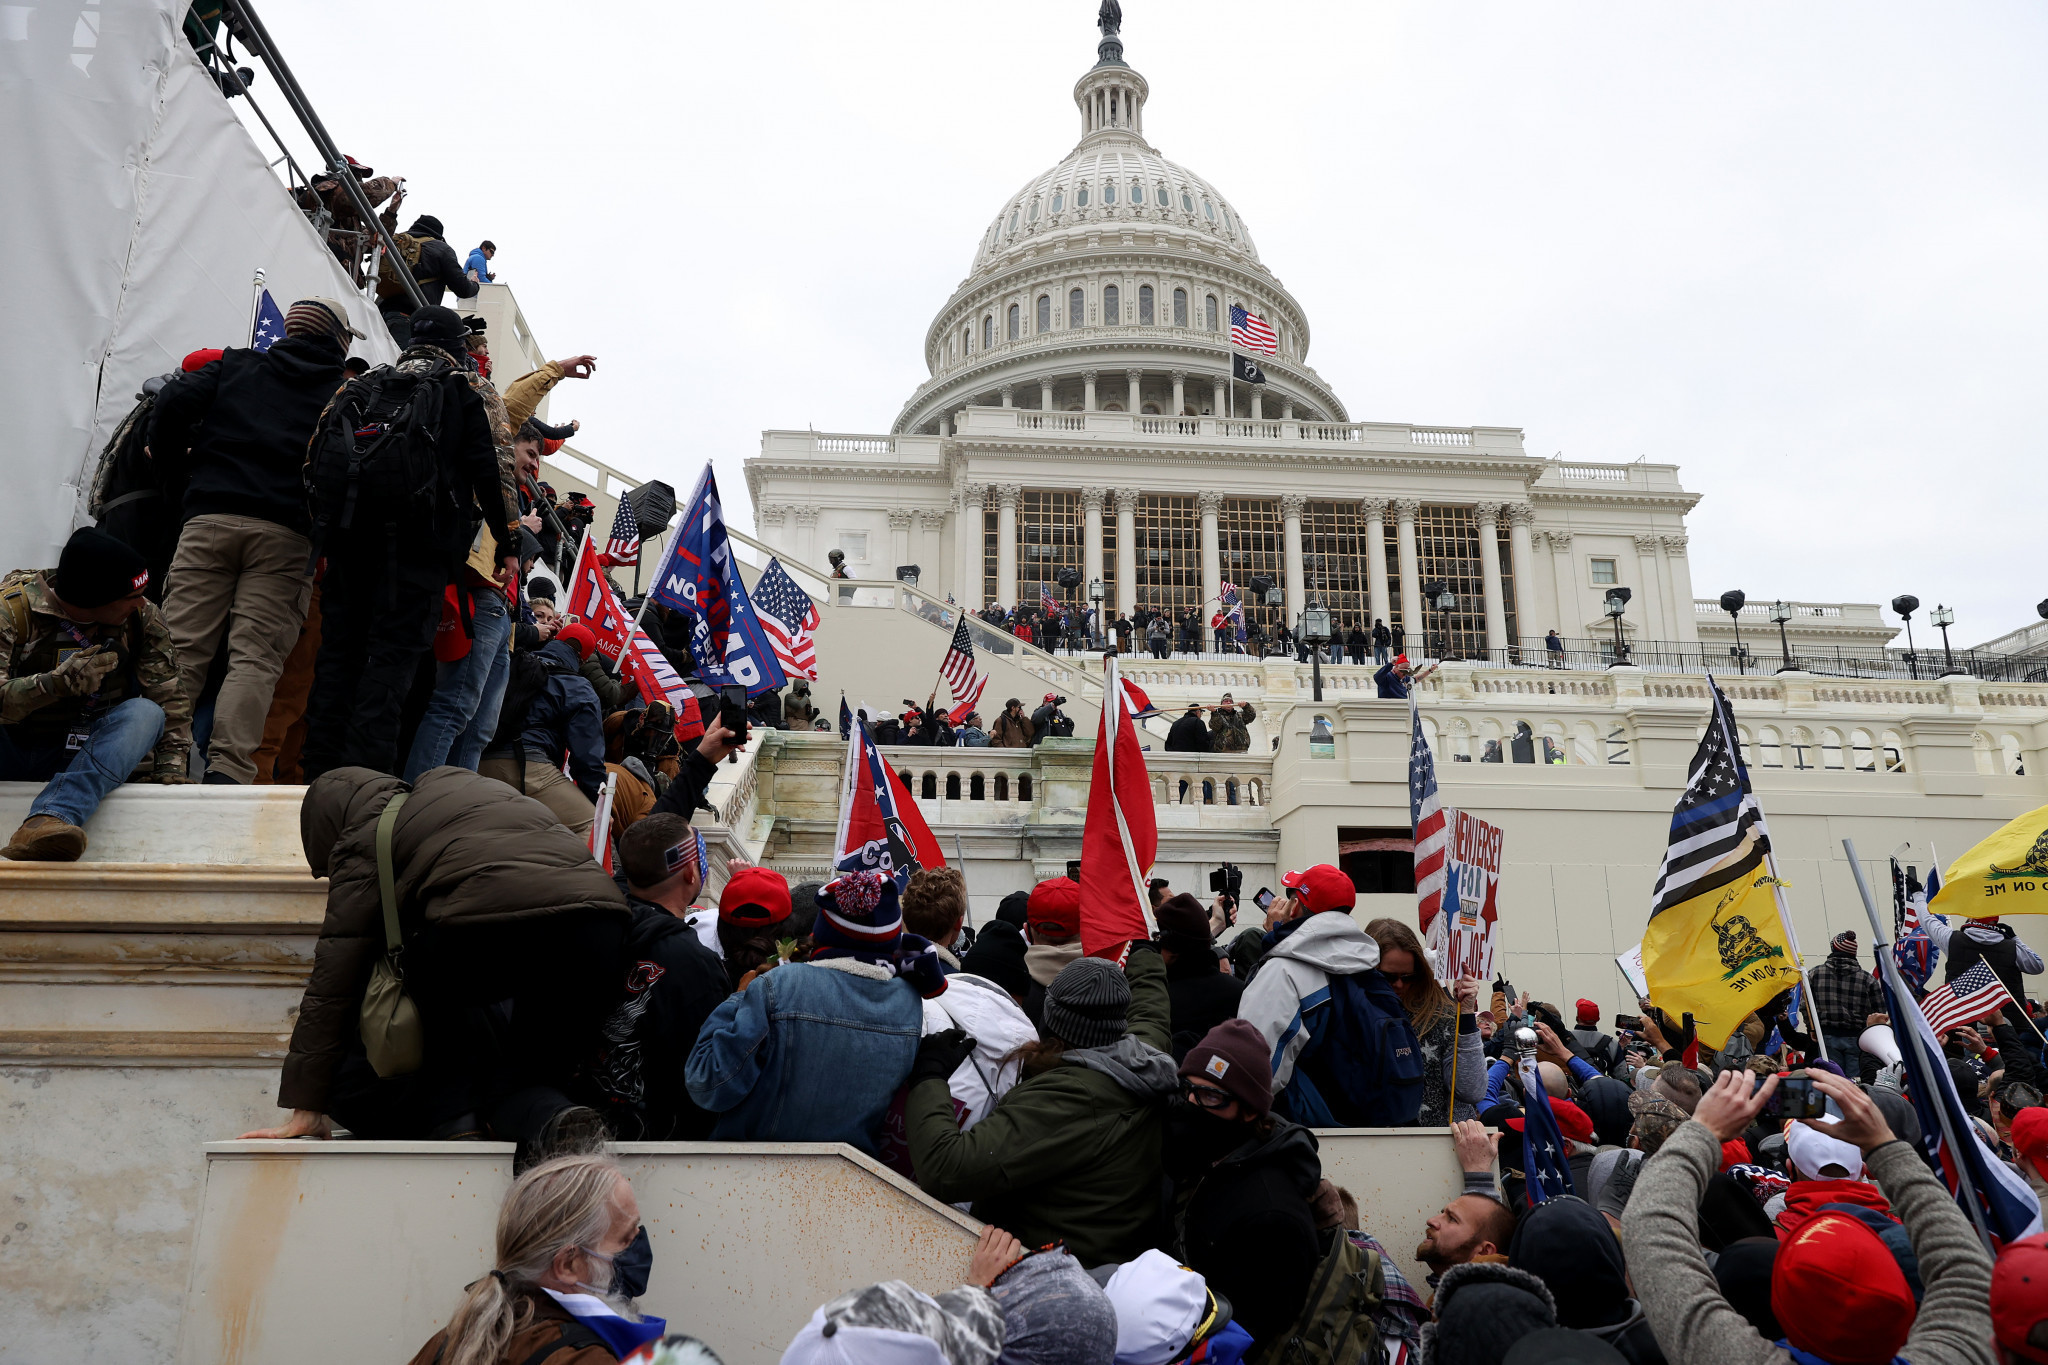 Five people were killed when supporters of Donald Trump stormed the Capitol Building ©Getty Images